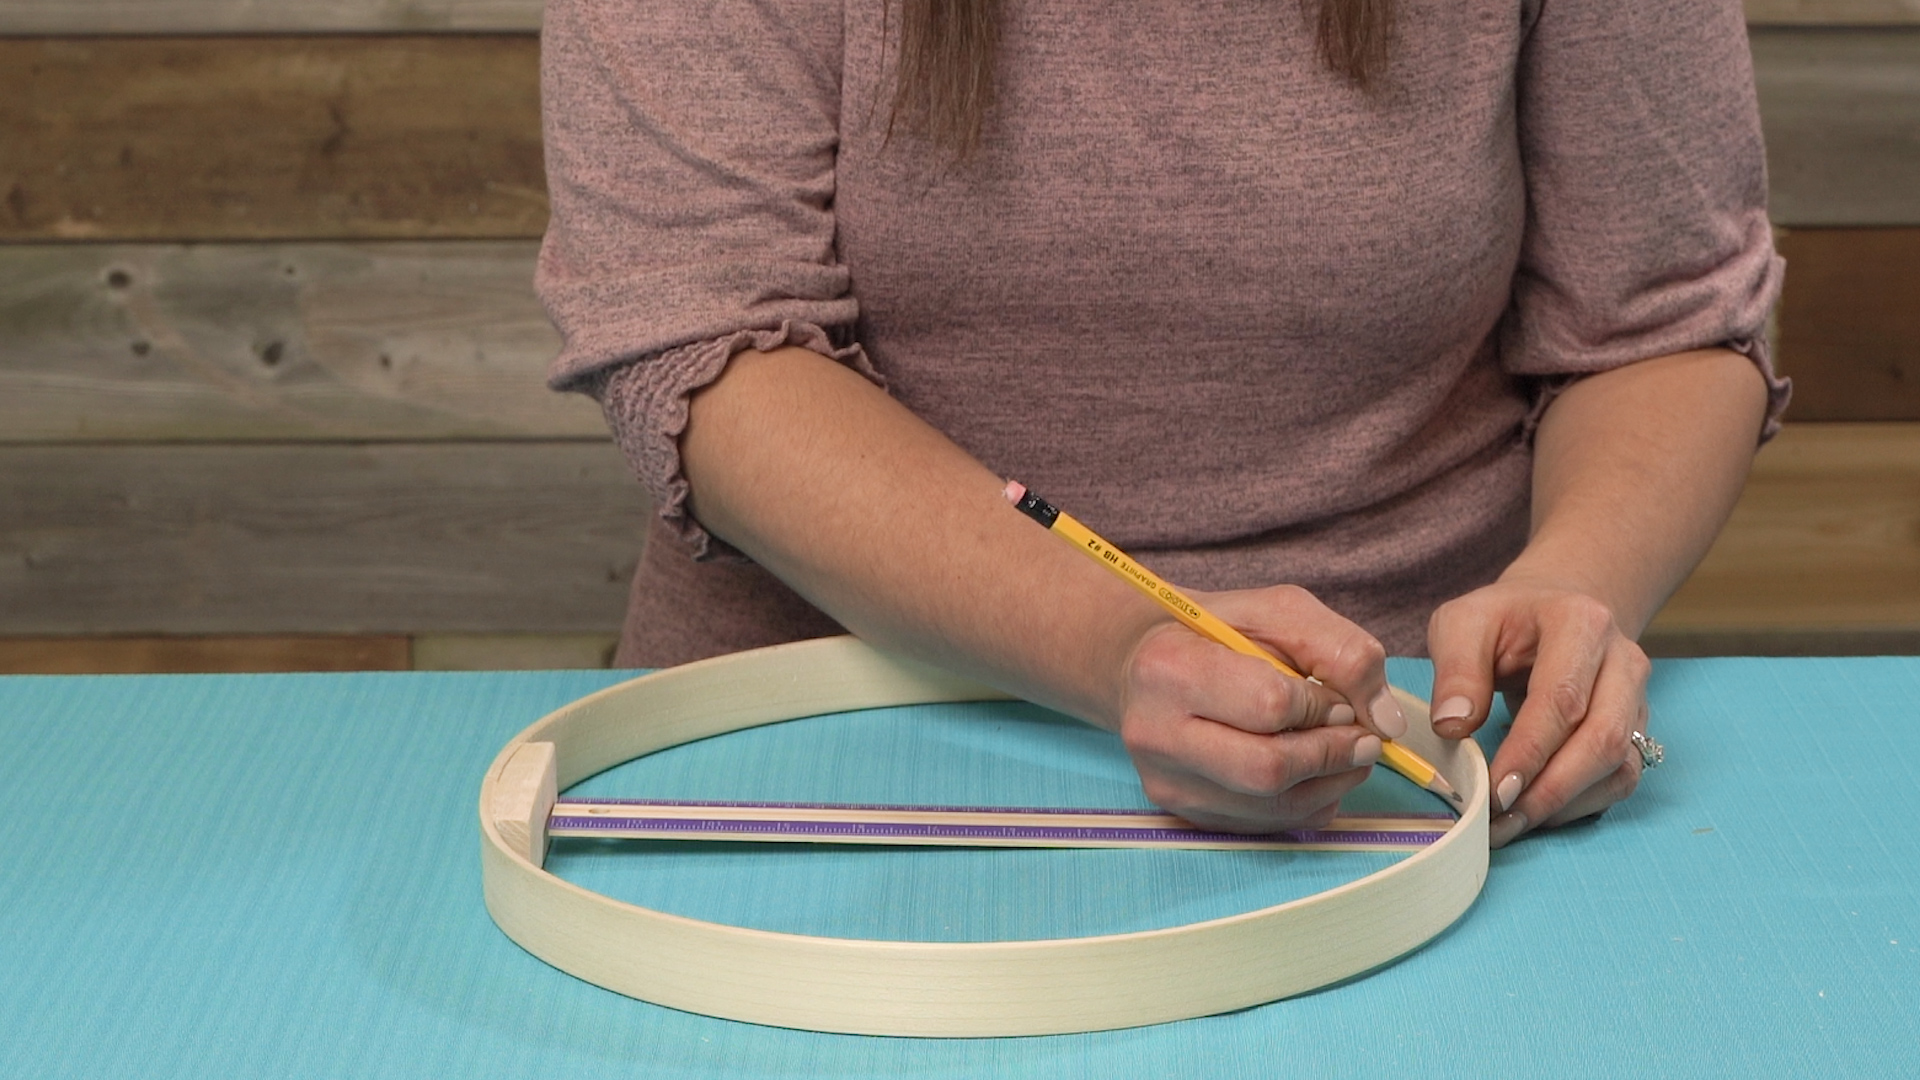 using ruler to mark center point on embroidery hoop